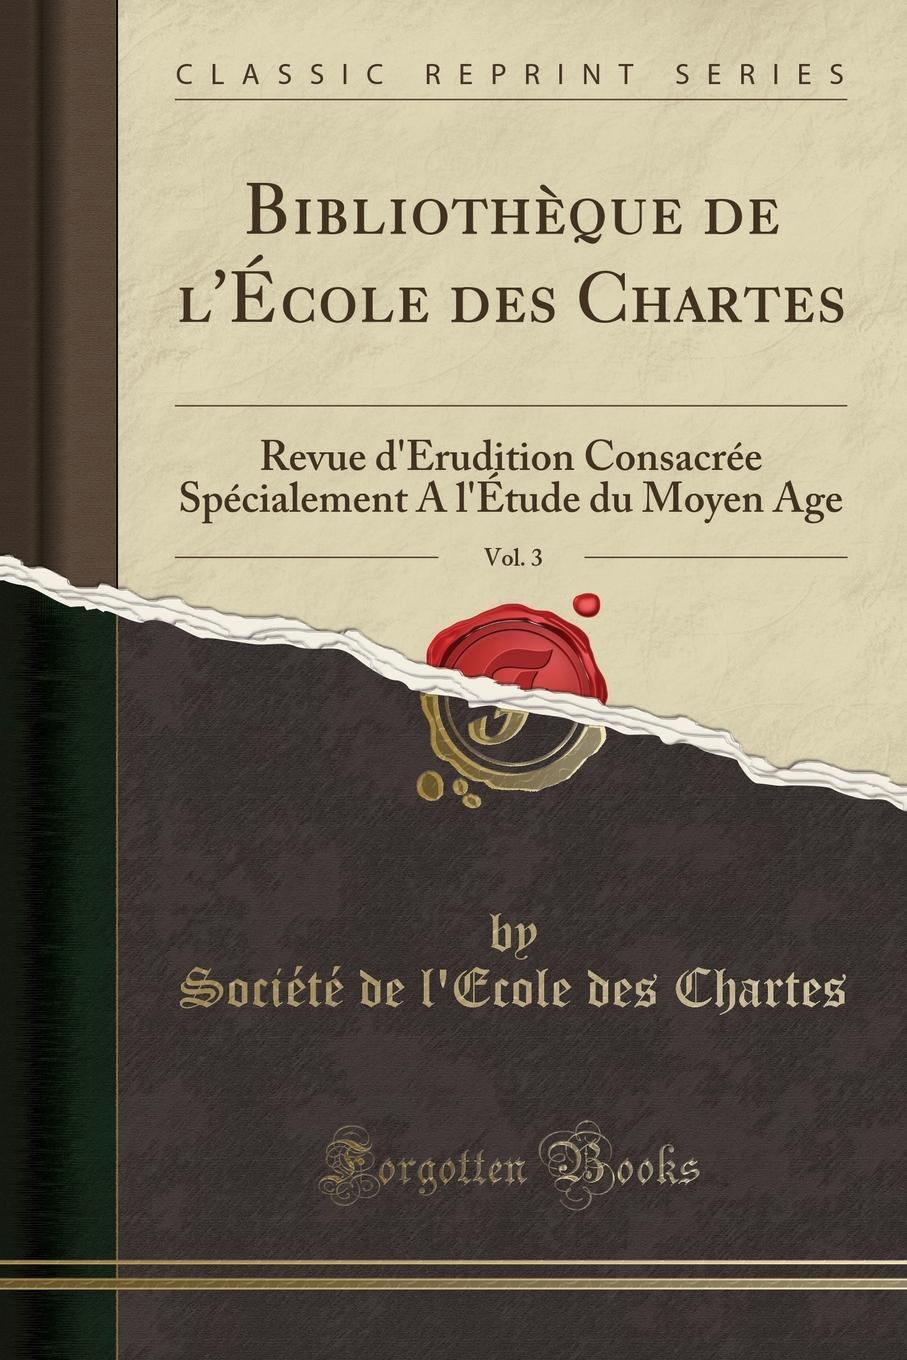 Société de l'Ecole des Chartes Bibliotheque de l.Ecole des Chartes, Vol. 3. Revue d.Erudition Consacree Specialement A l.Etude du Moyen Age (Classic Reprint) 6 70 140mm laser xenon lamp flash lamp laser light with factory price